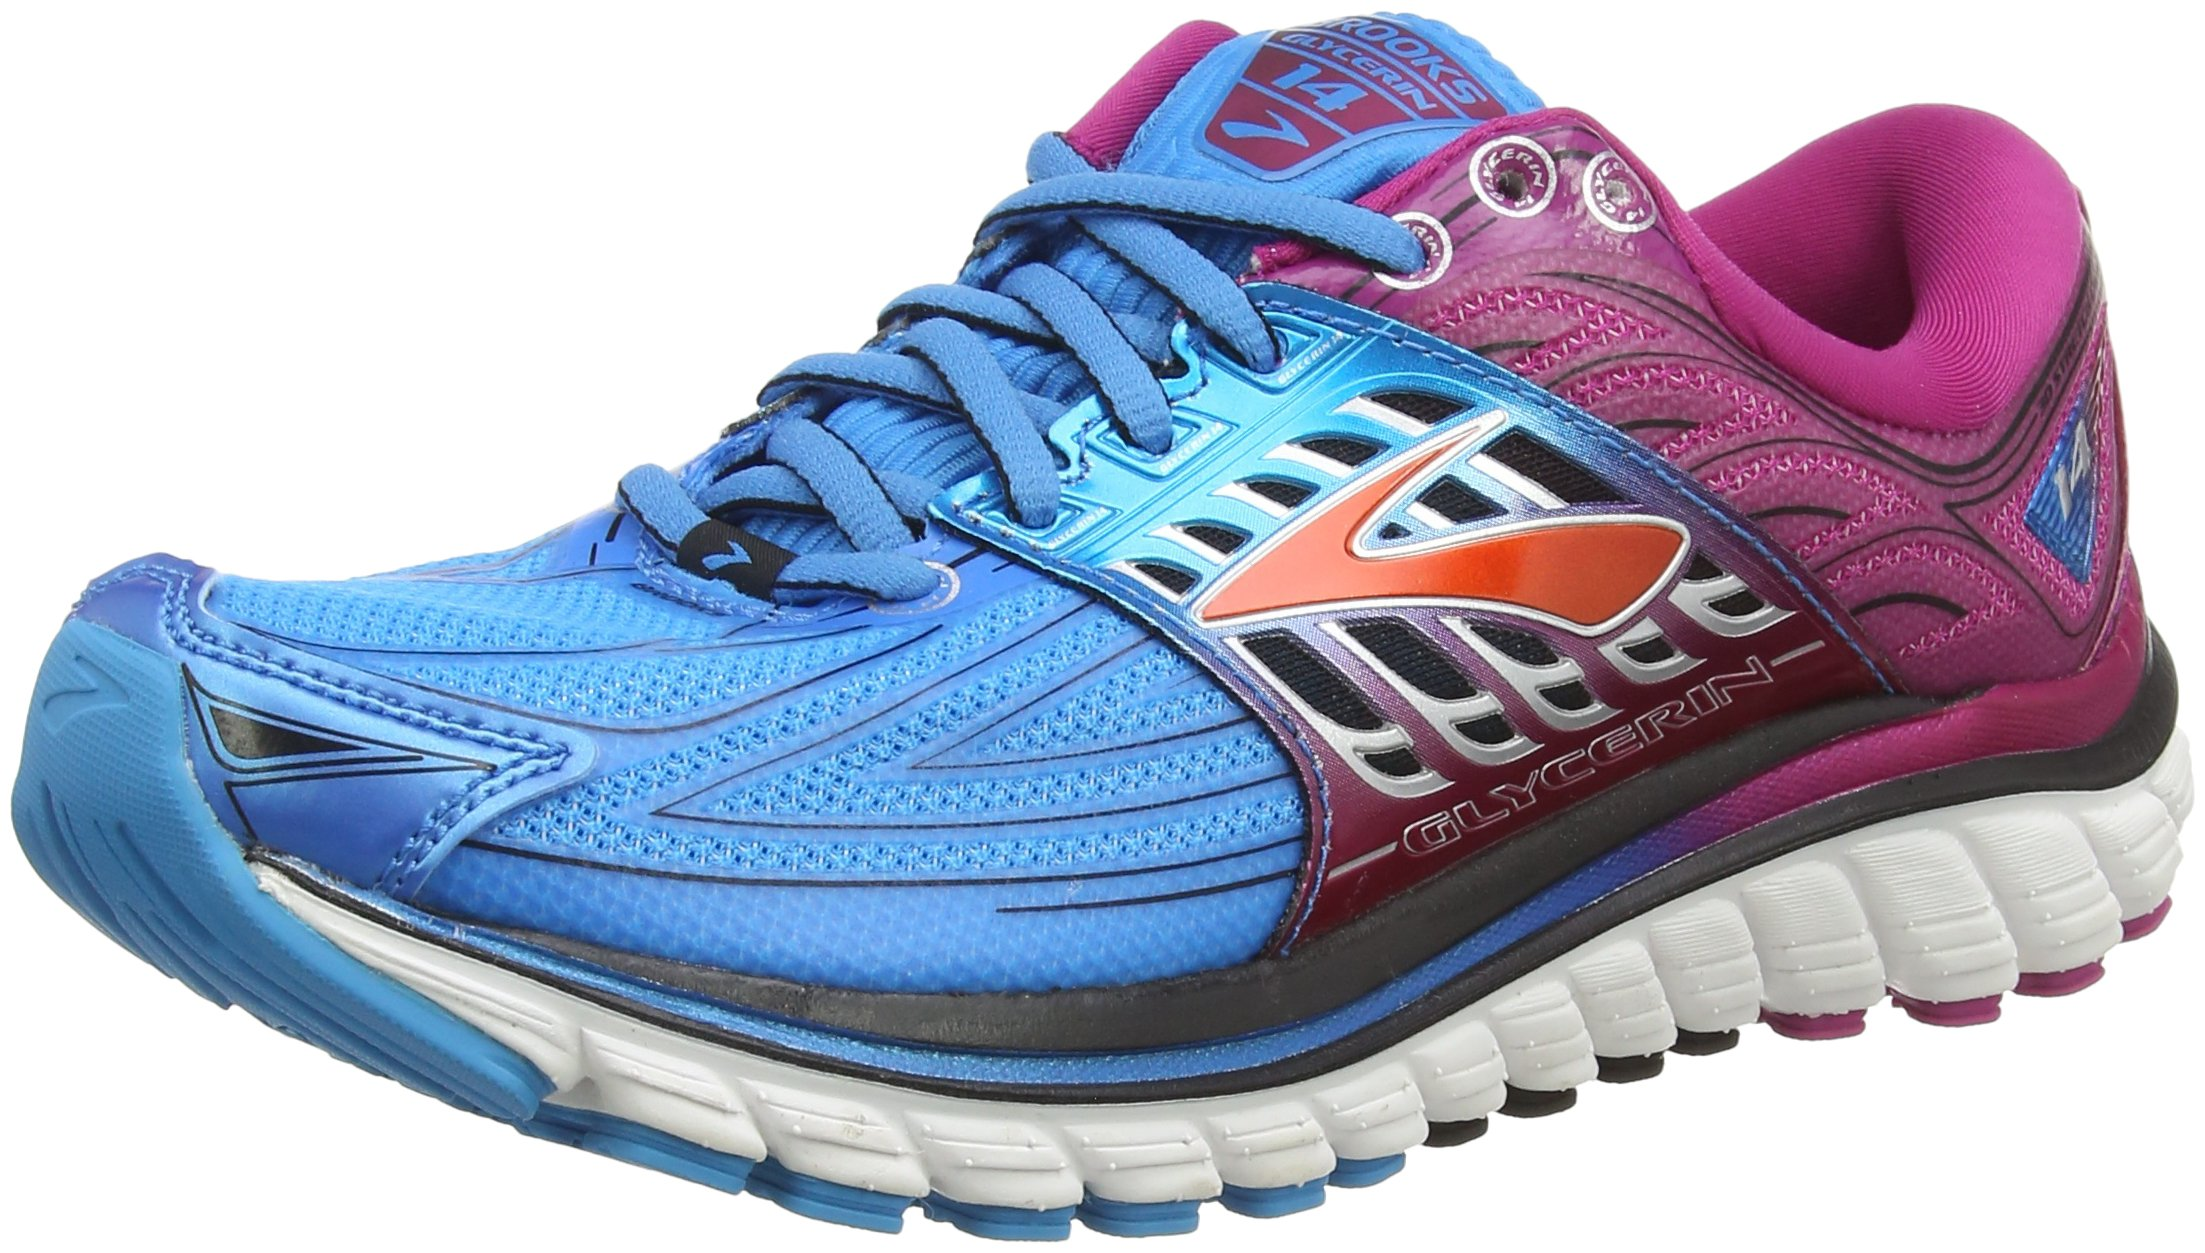 9a87c0ab91 Galleon - Brooks Glycerin 14 Women's Running Shoes - 9.5 - Blue